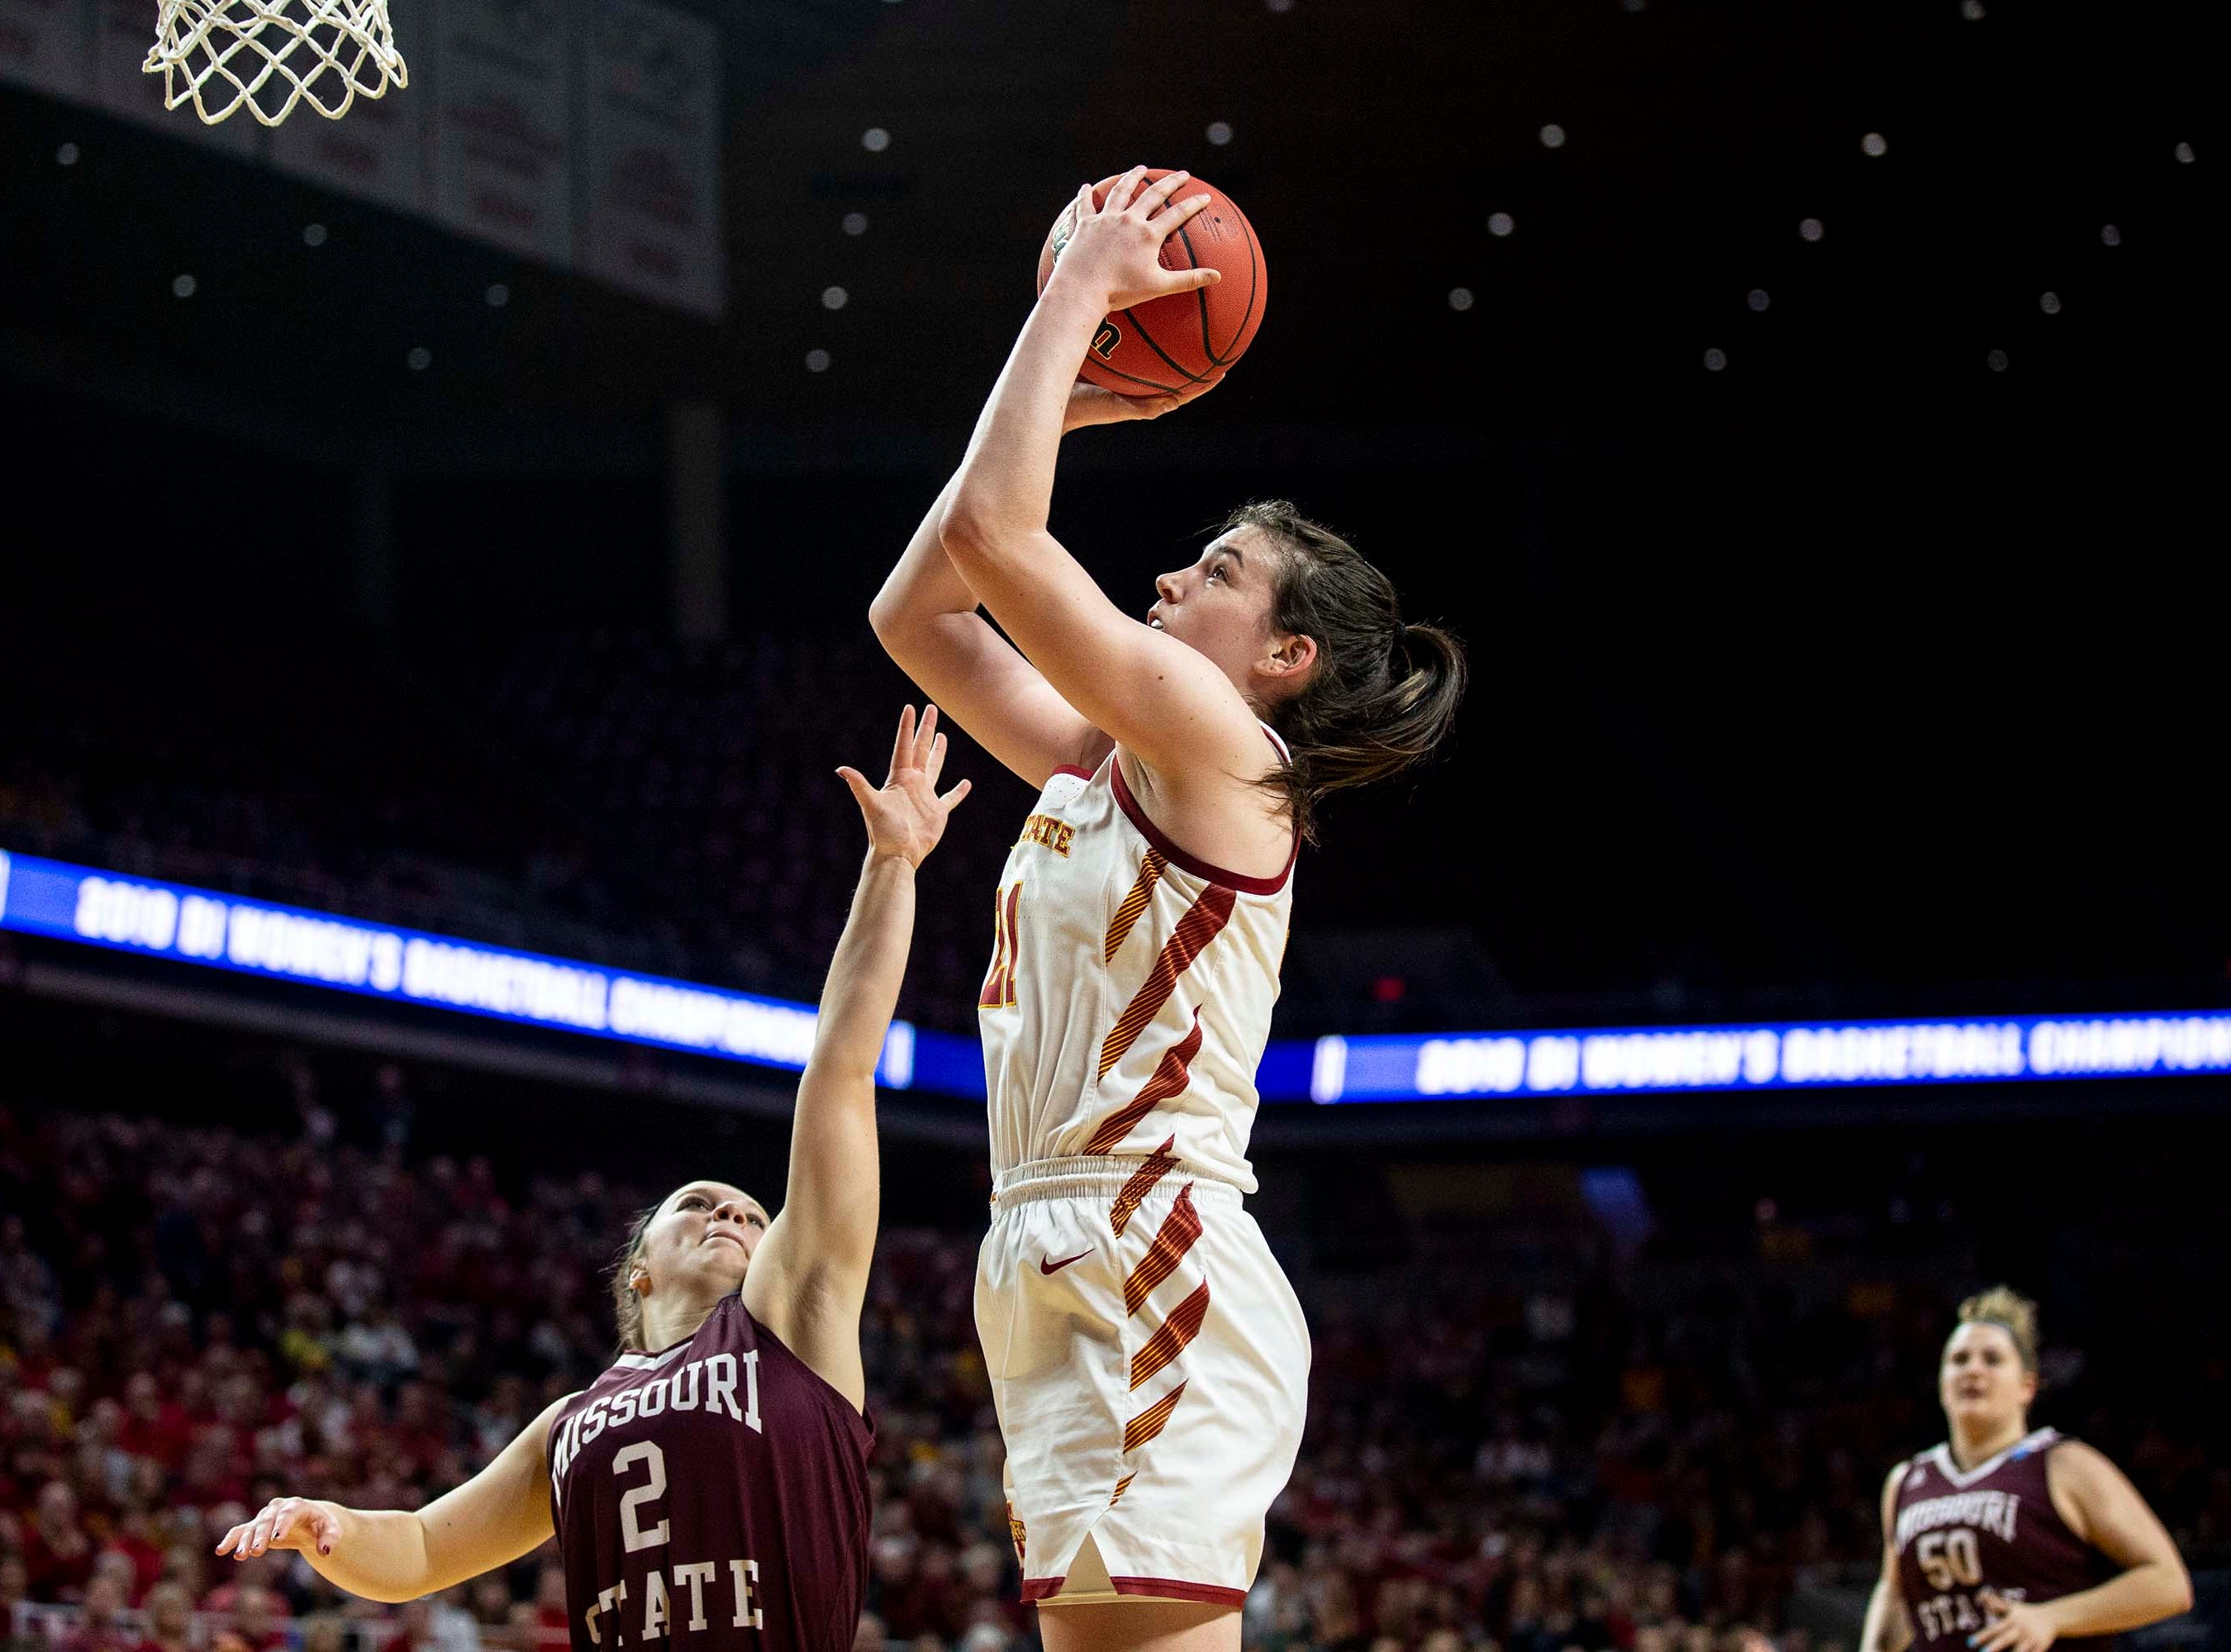 Iowa State's Bridget Carleton shoots the ball during the NCAA Tournament second-round match-up between Iowa State and Missouri State on Monday, March 25, 2019, in Hilton Coliseum, in Ames, Iowa.